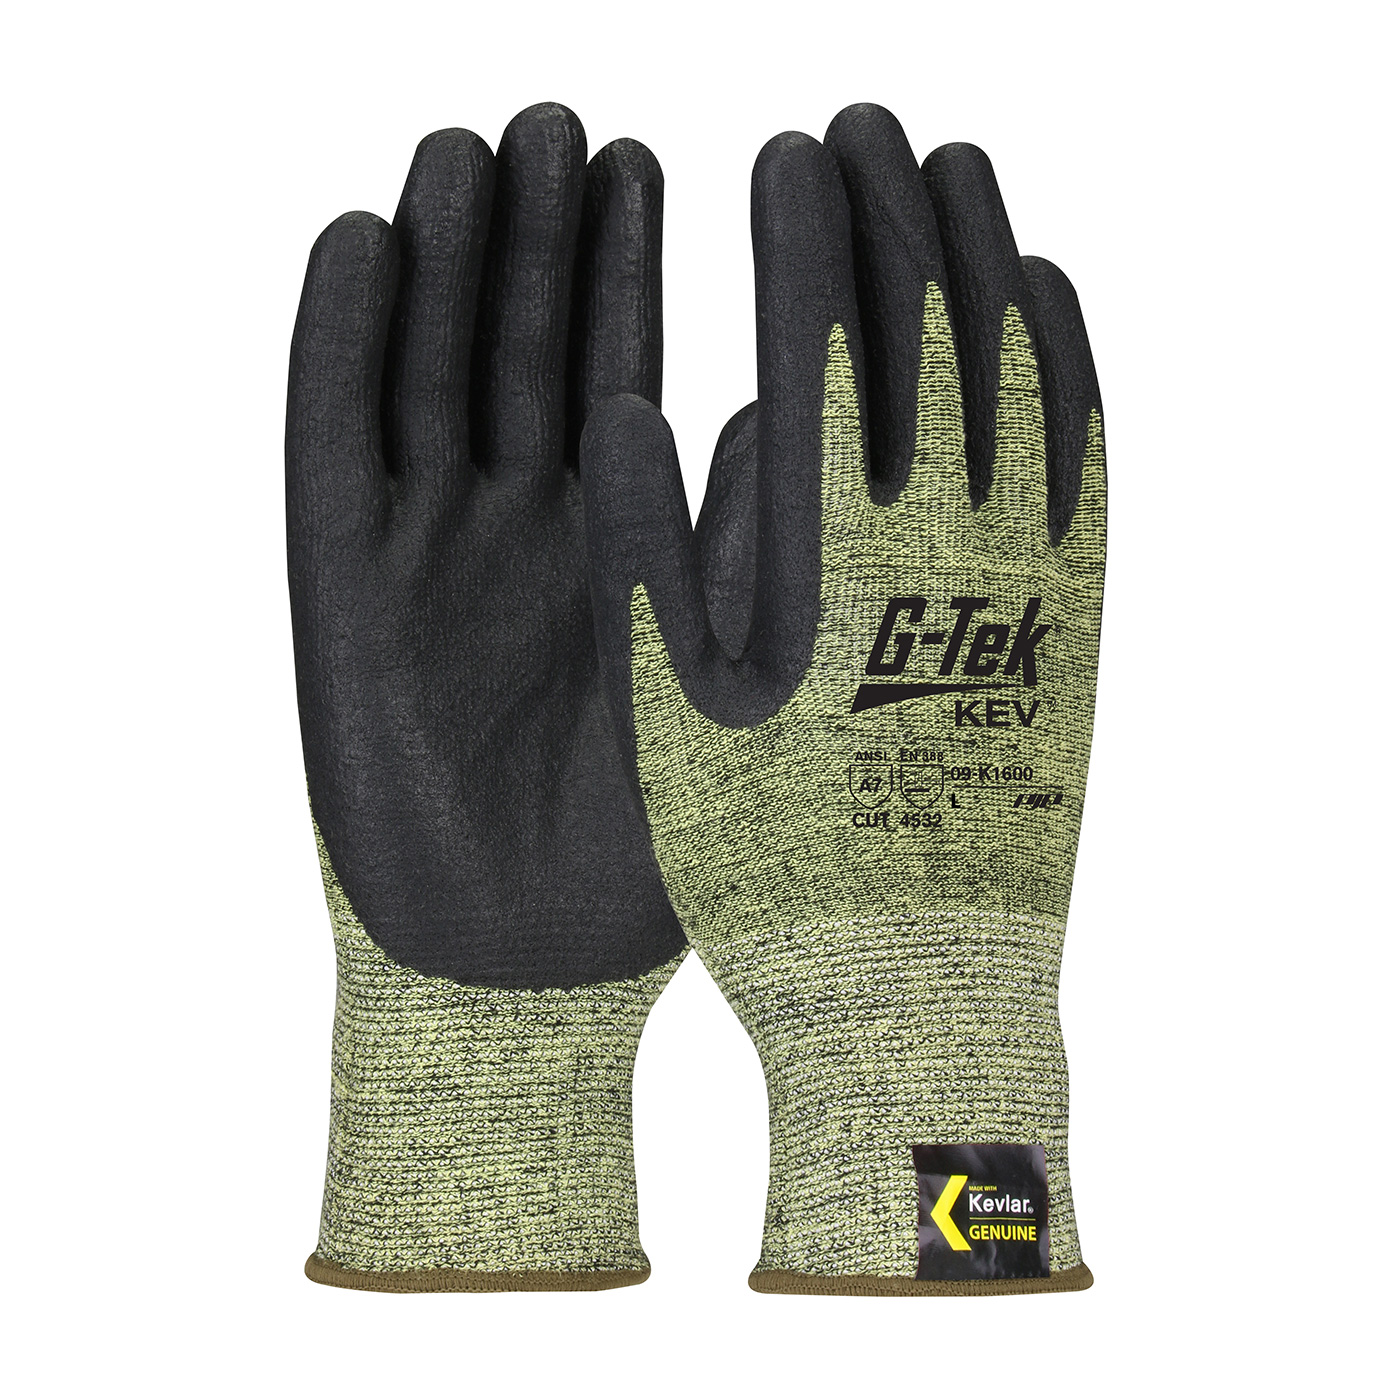 09-K1600 PIP® G-Tek® Kev™ 13-Gauge Kevlar® Nitrile Coated Seamless Knit Gloves